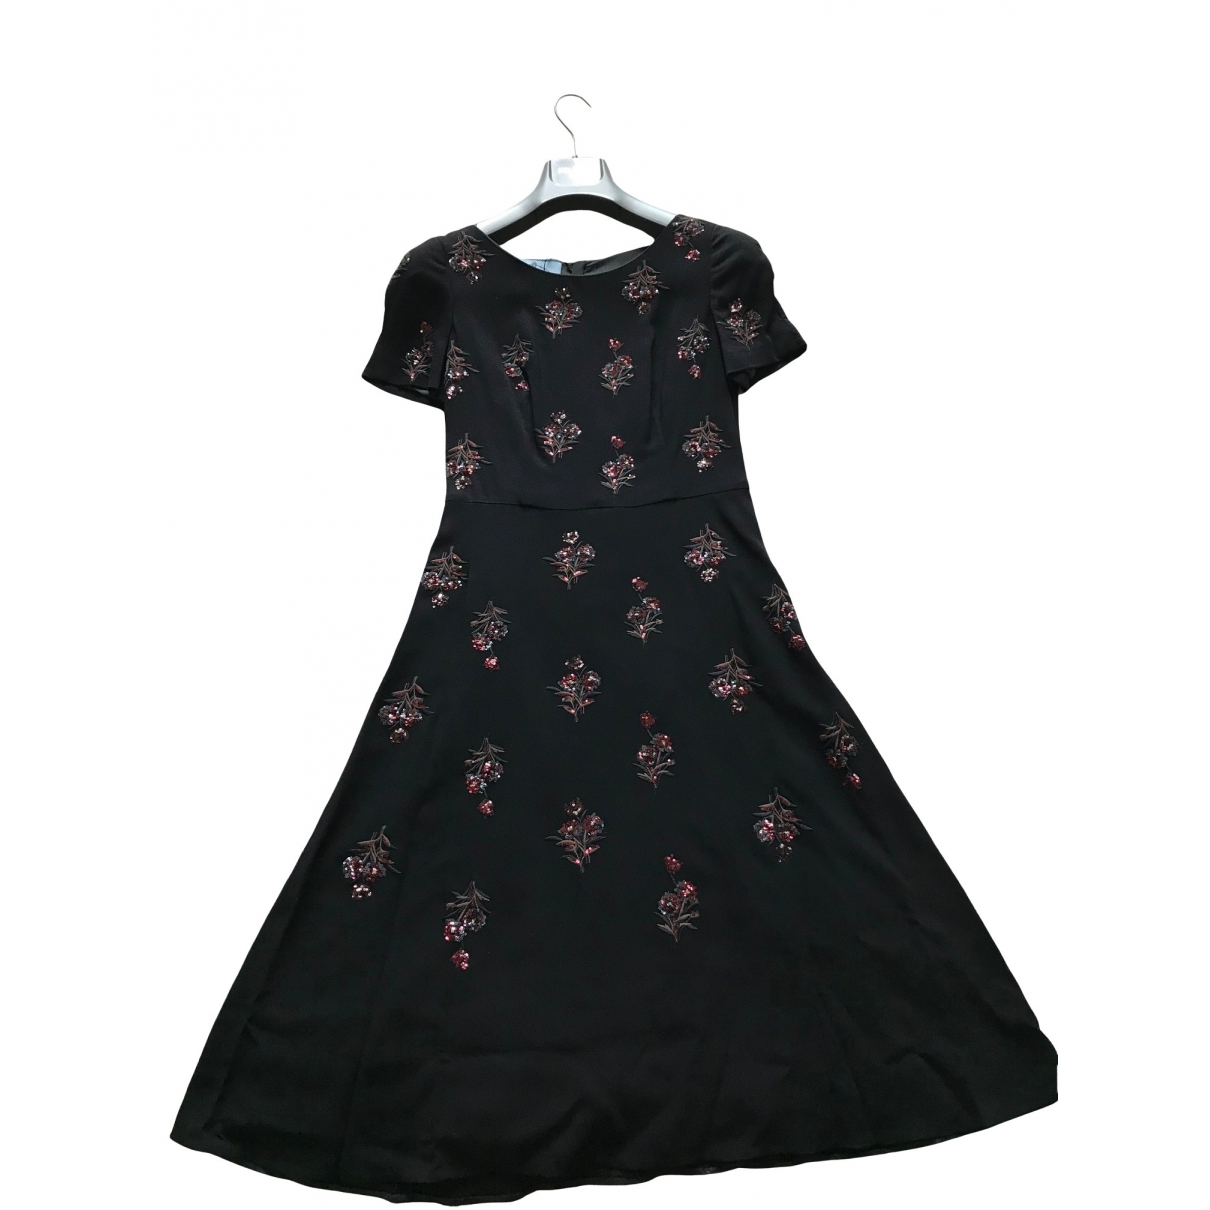 Prada \N Black dress for Women 38 IT